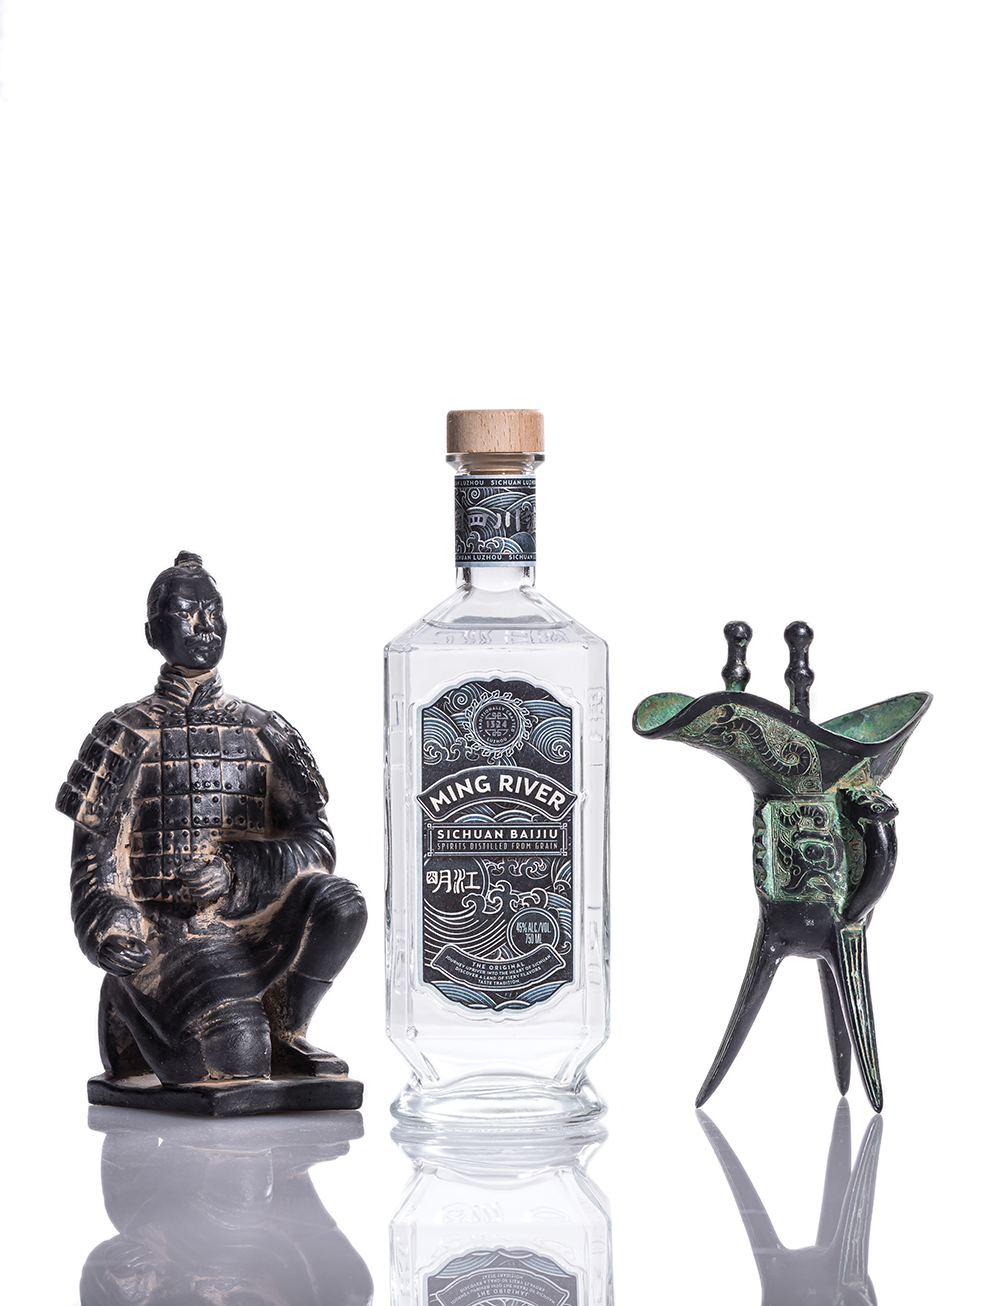 Ming River Baijiu Bottle. Credit Noah Fecks